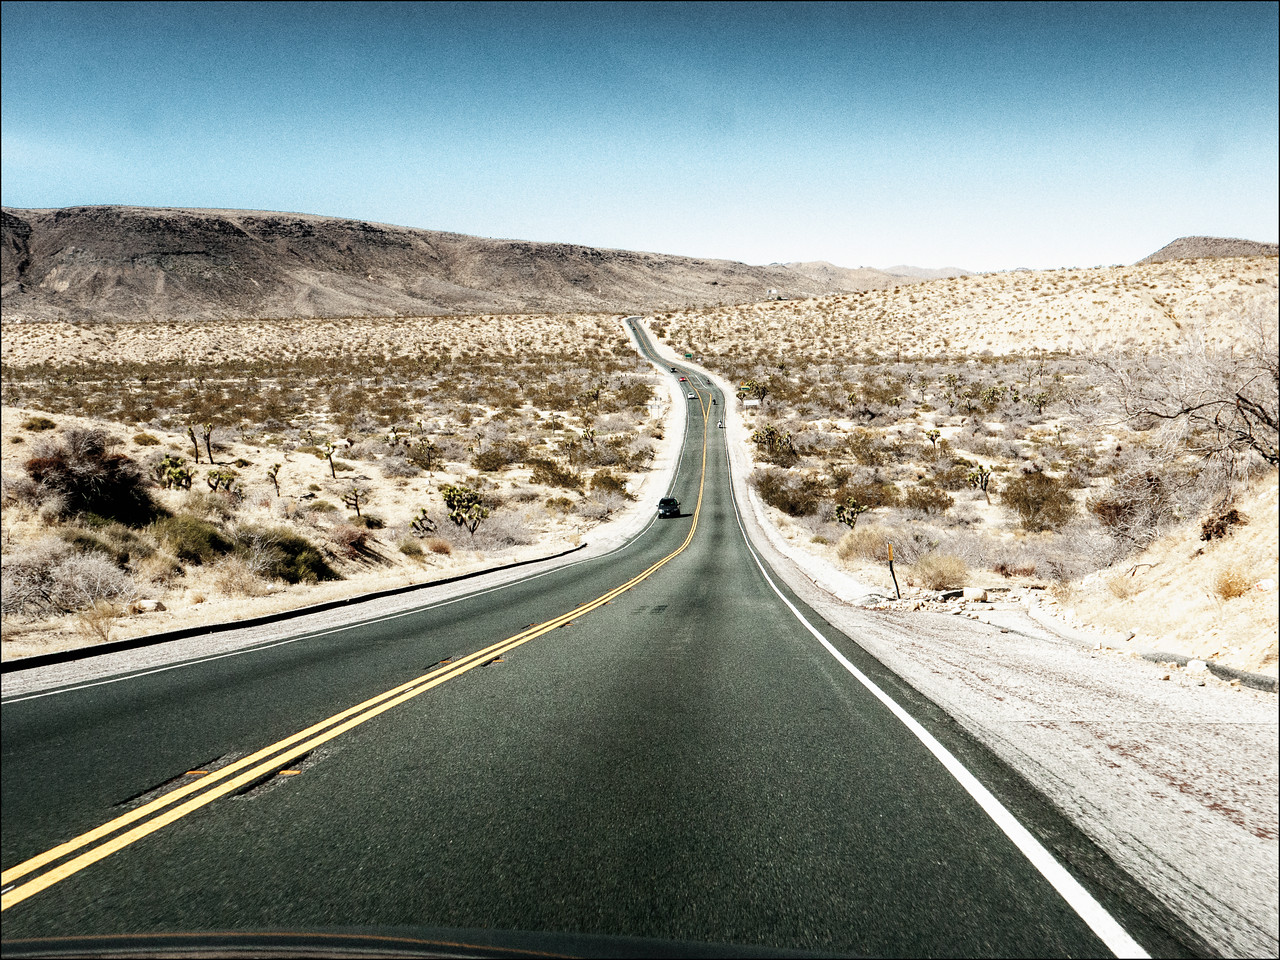 This is the road we drove to come to Palm Springs last Friday but it was dark then so now we get to see what we missed!